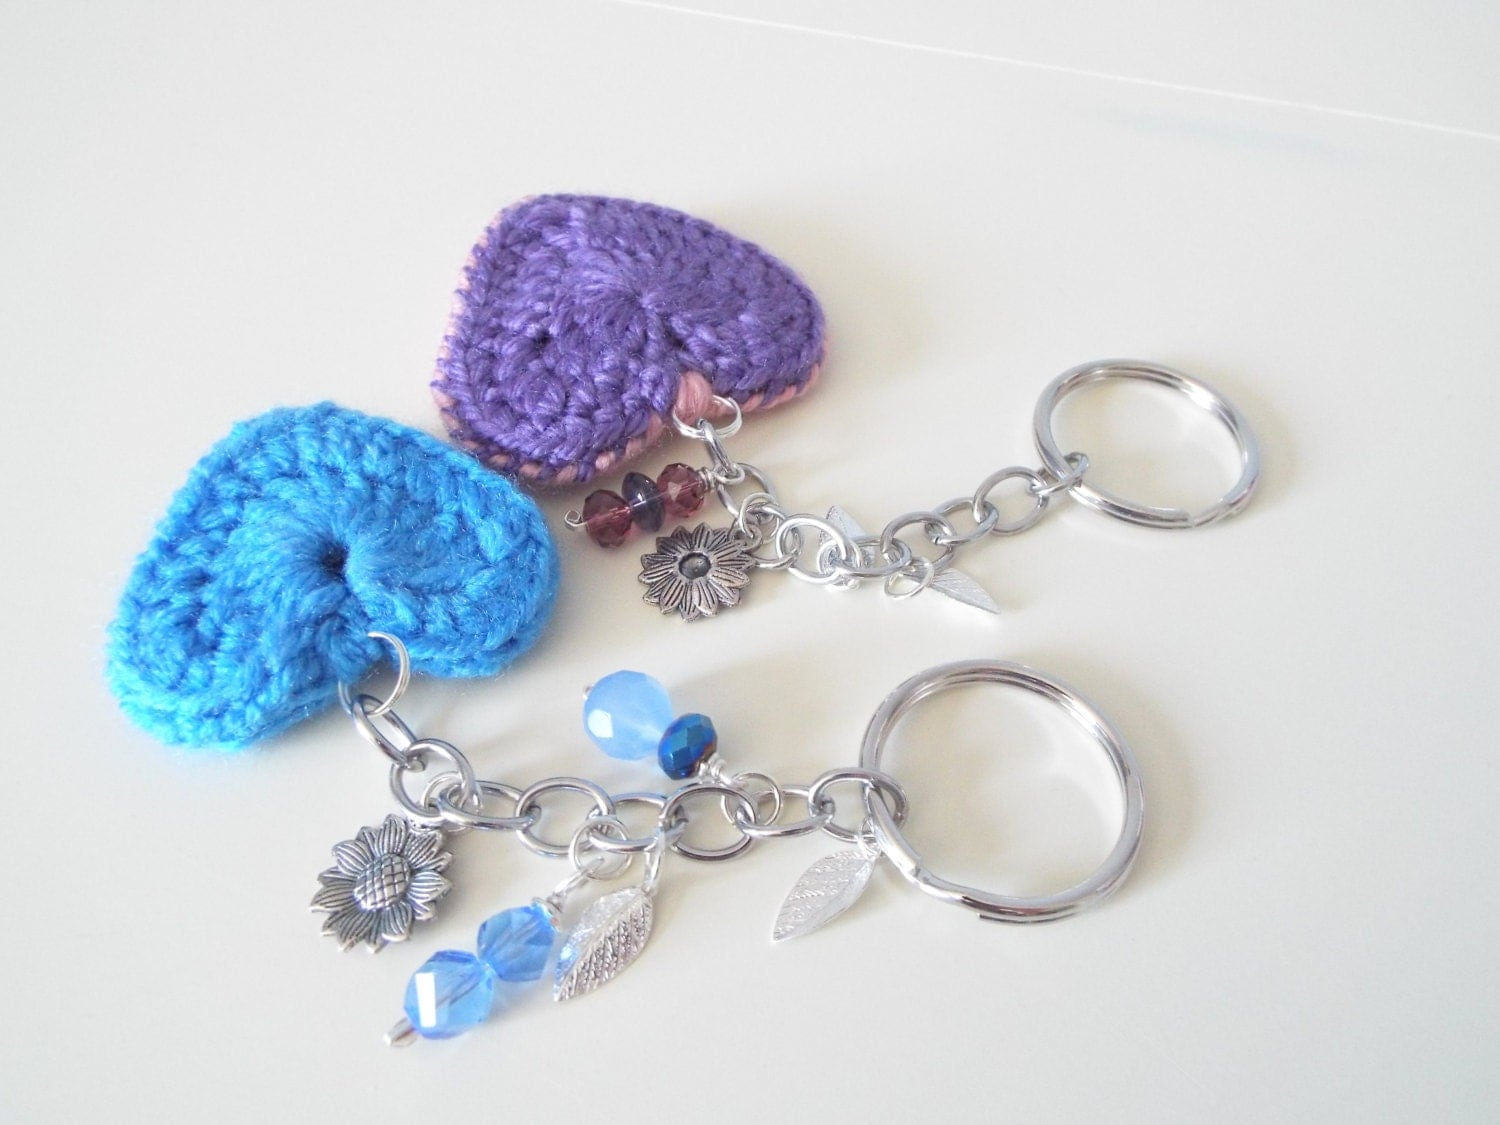 Crochet heart keychain Keyring Small by CrochetToysCorner on Etsy